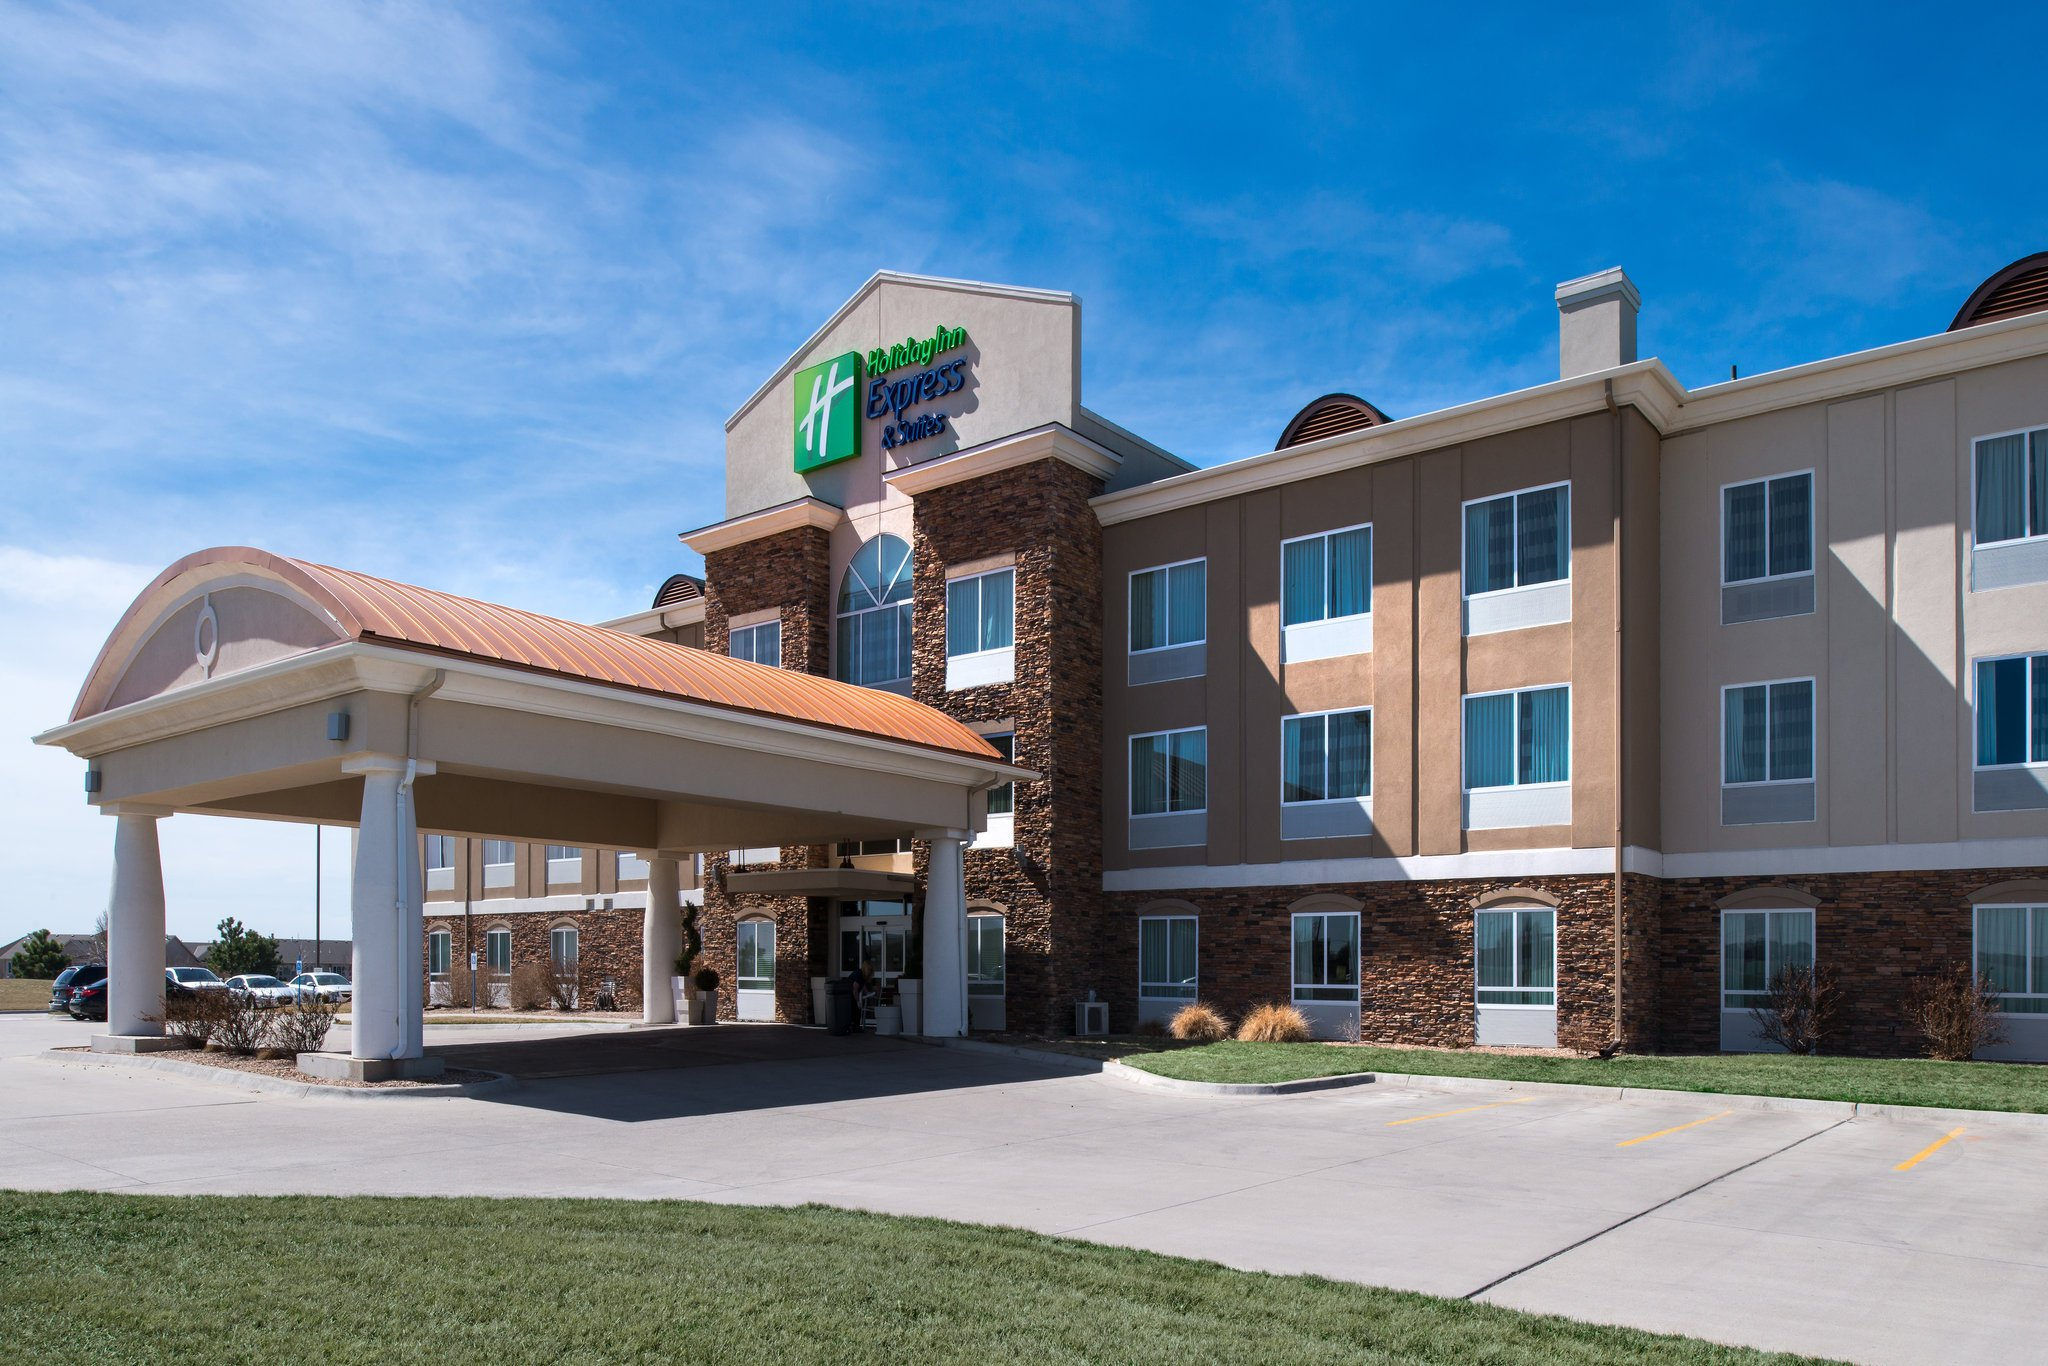 Holiday Inn Express Hotel & Suites Wichita Northwest Maize K-96